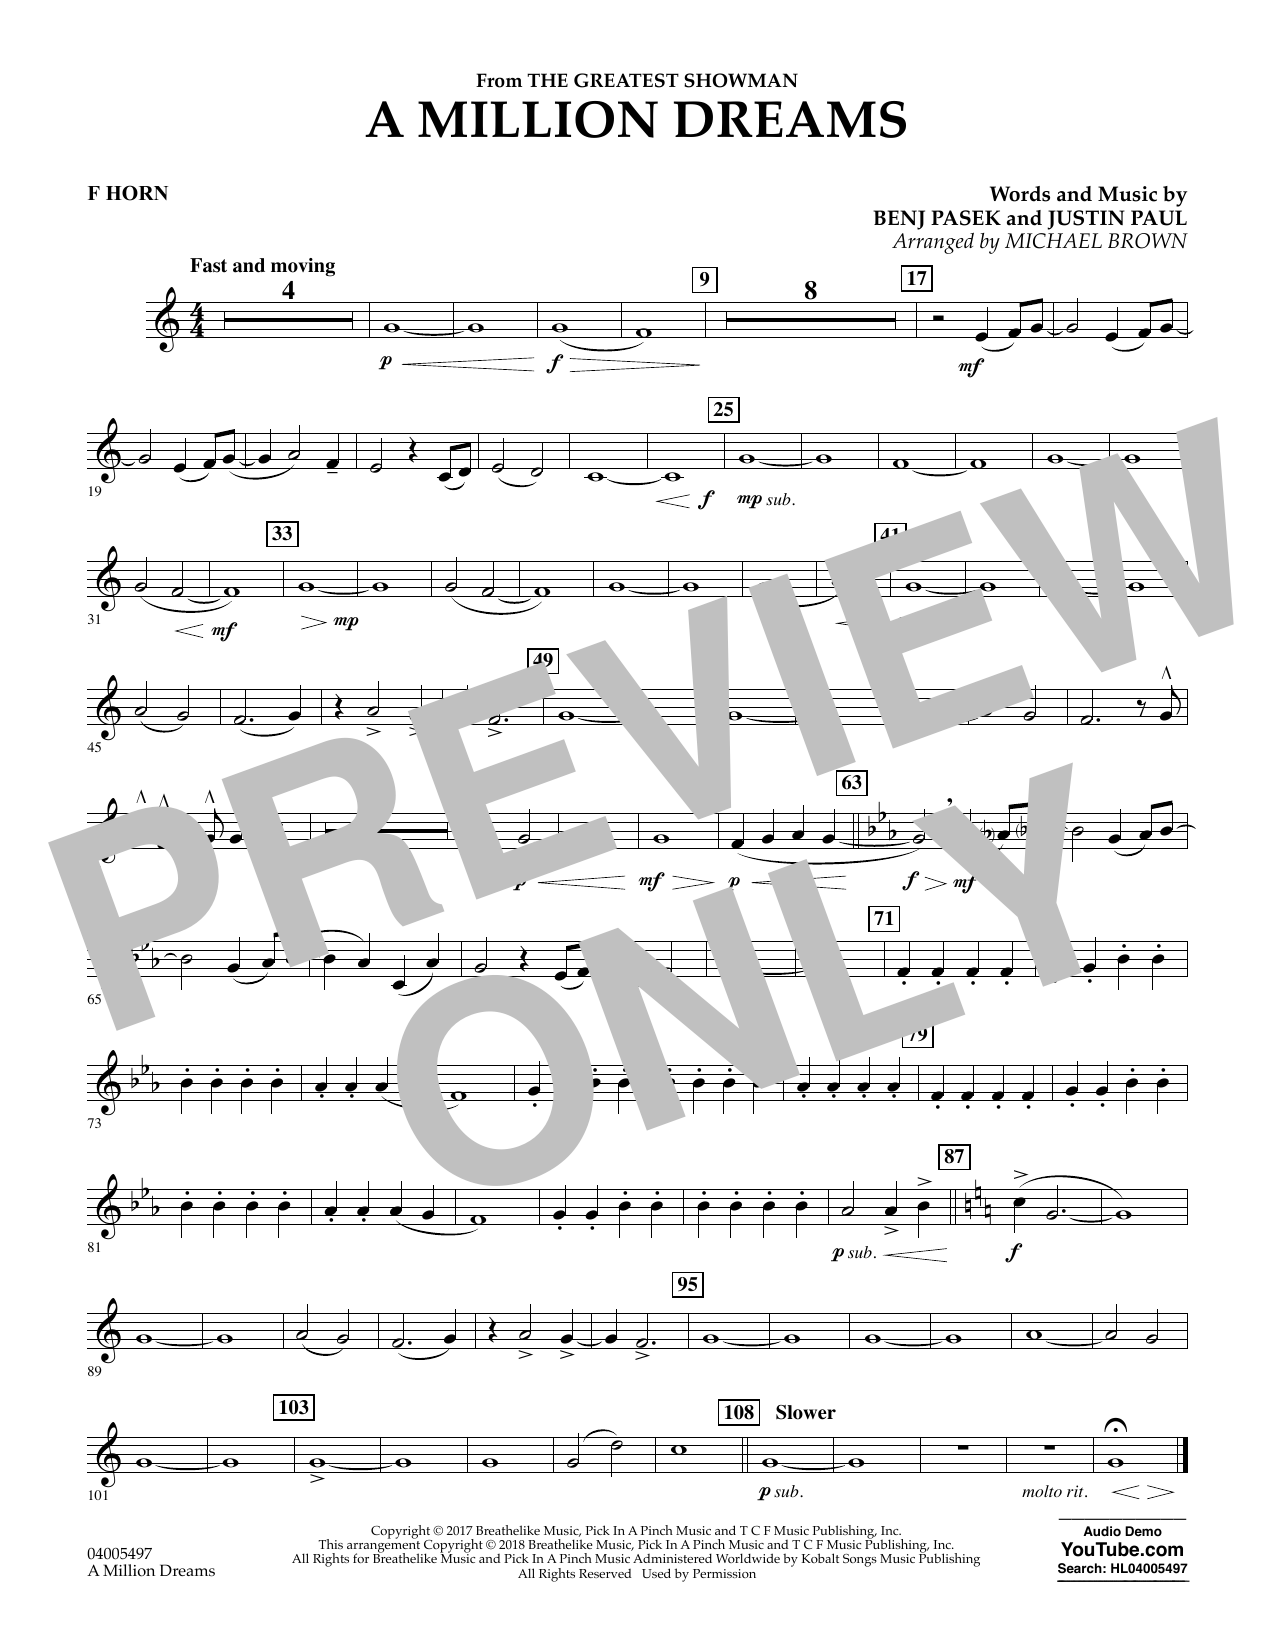 Pasek & Paul A Million Dreams (from The Greatest Showman) (arr. Michael Brown) - F Horn sheet music notes and chords. Download Printable PDF.